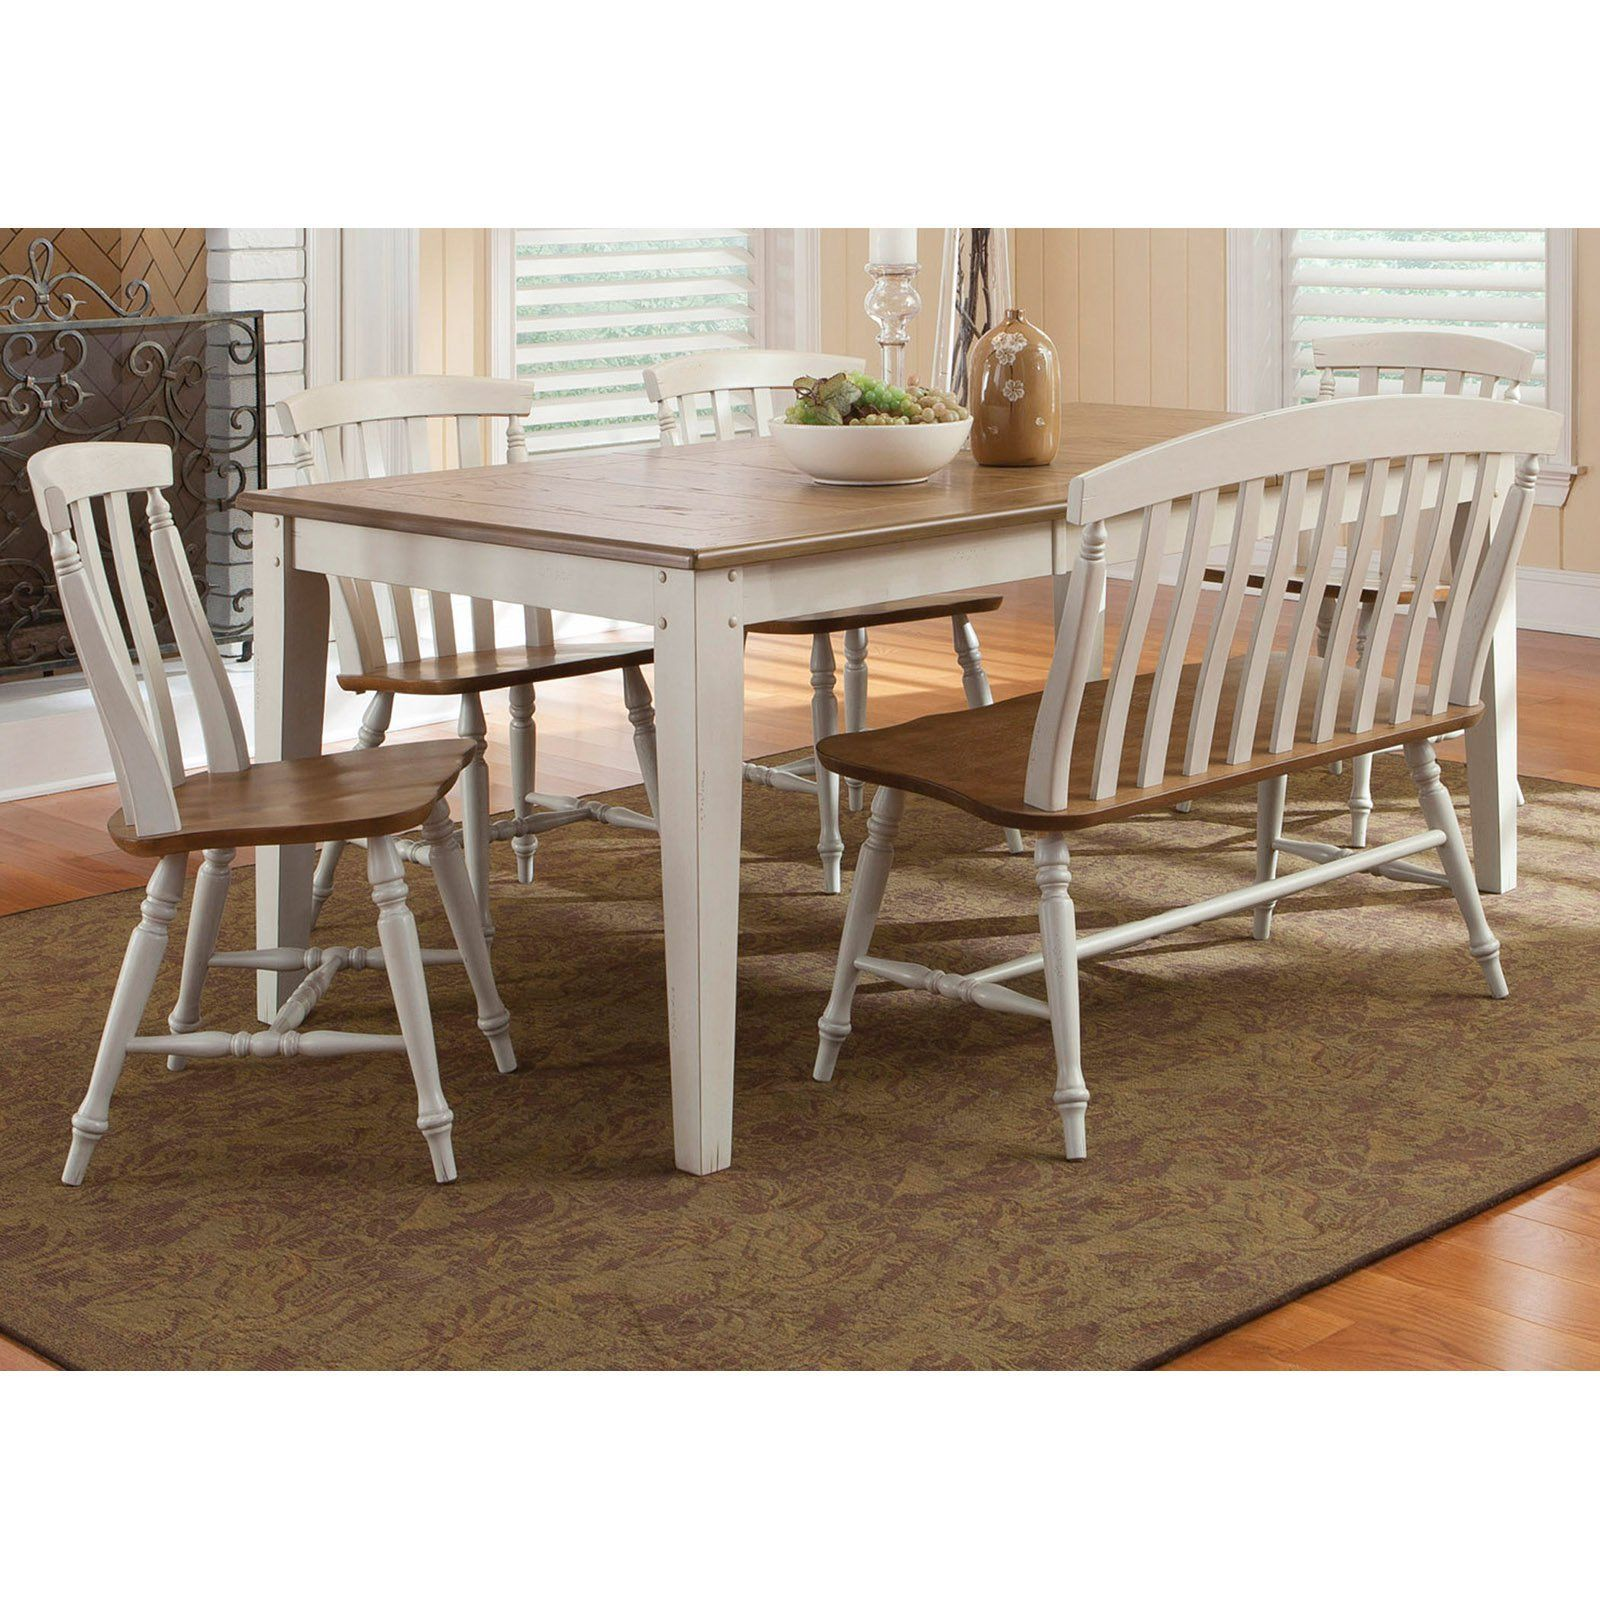 Liberty furniture canton 6 piece rectangular table set from hayneedle com dining room benchdining